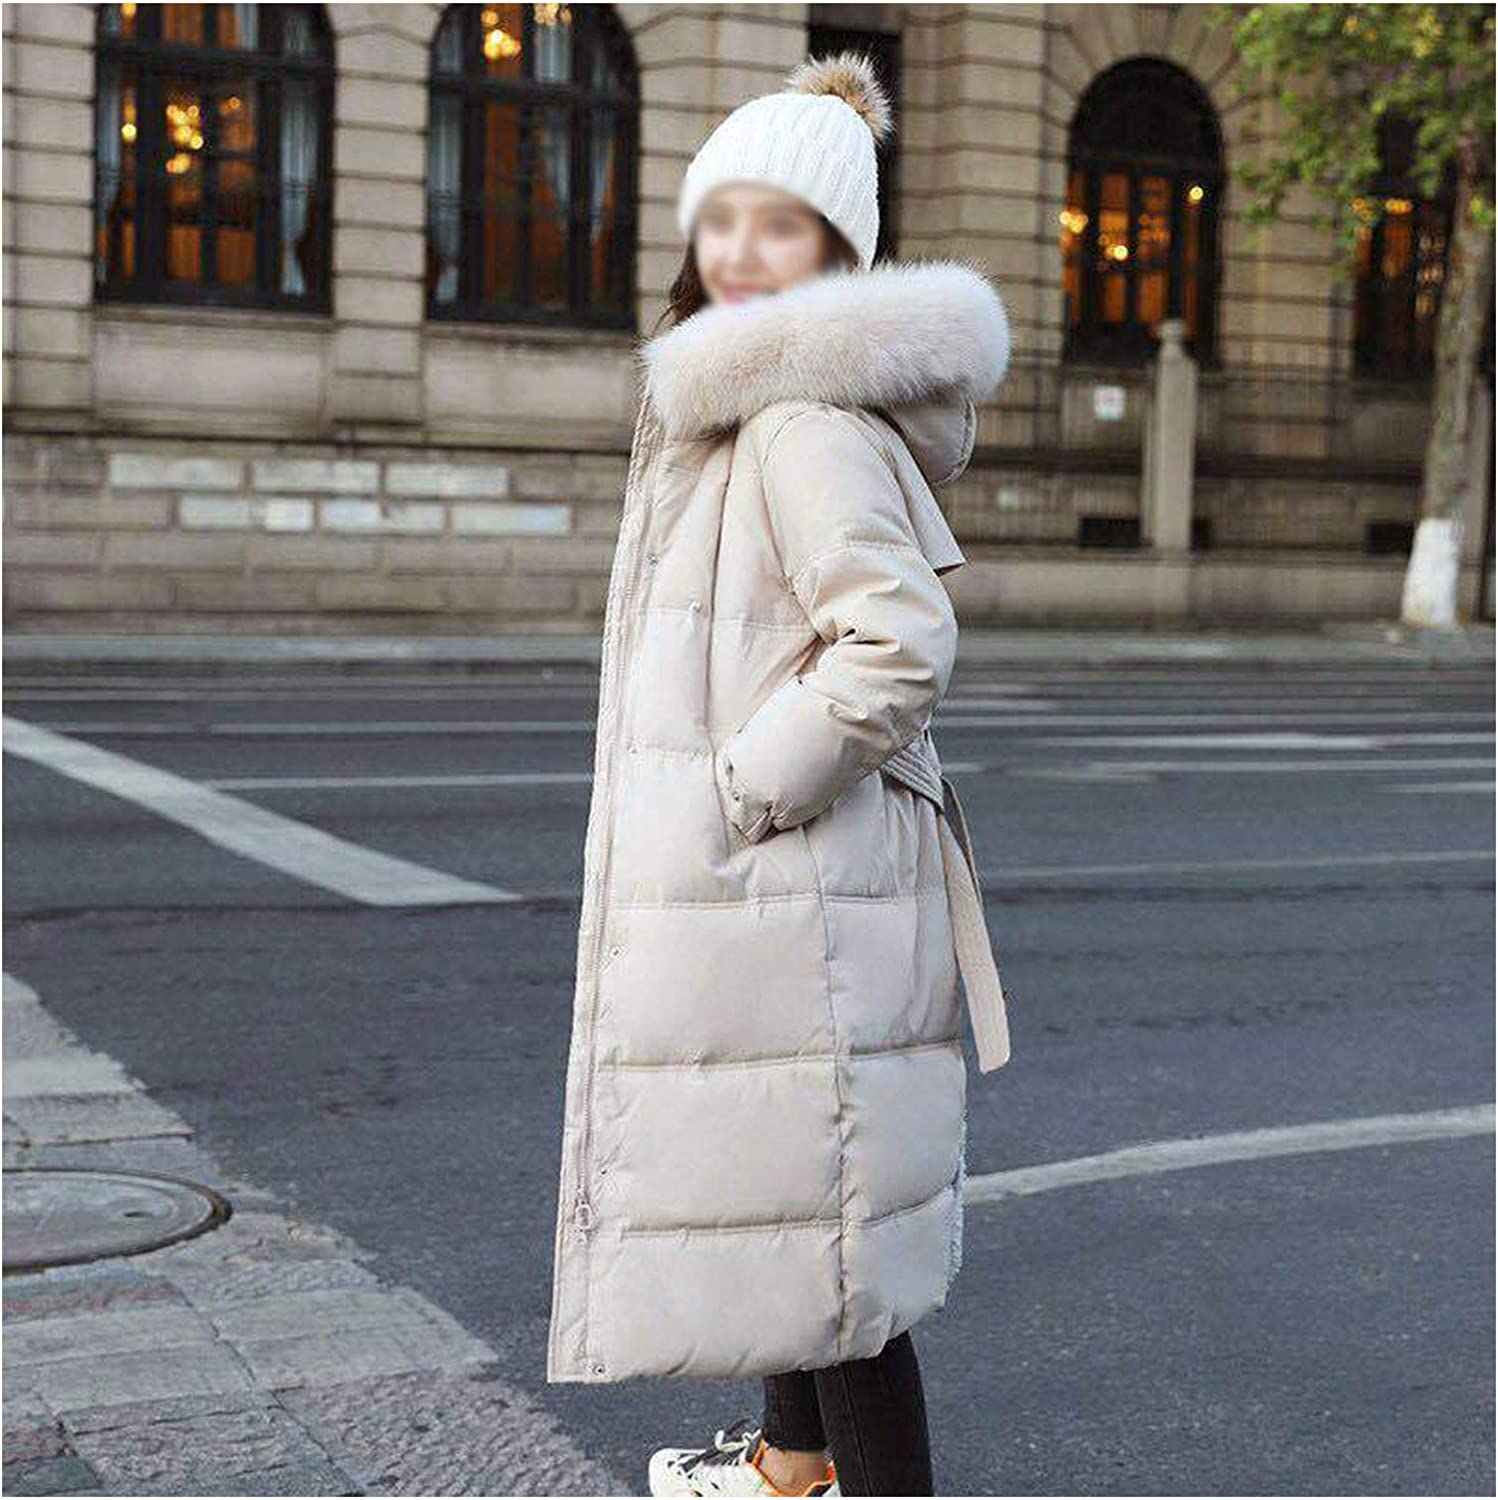 DALLL Women's Vegan Down Puffer Hooded Jacket,Full Long Thickened Winter Coat with Faux Fur,Classic Warm Parka for Ski,Beige,XL